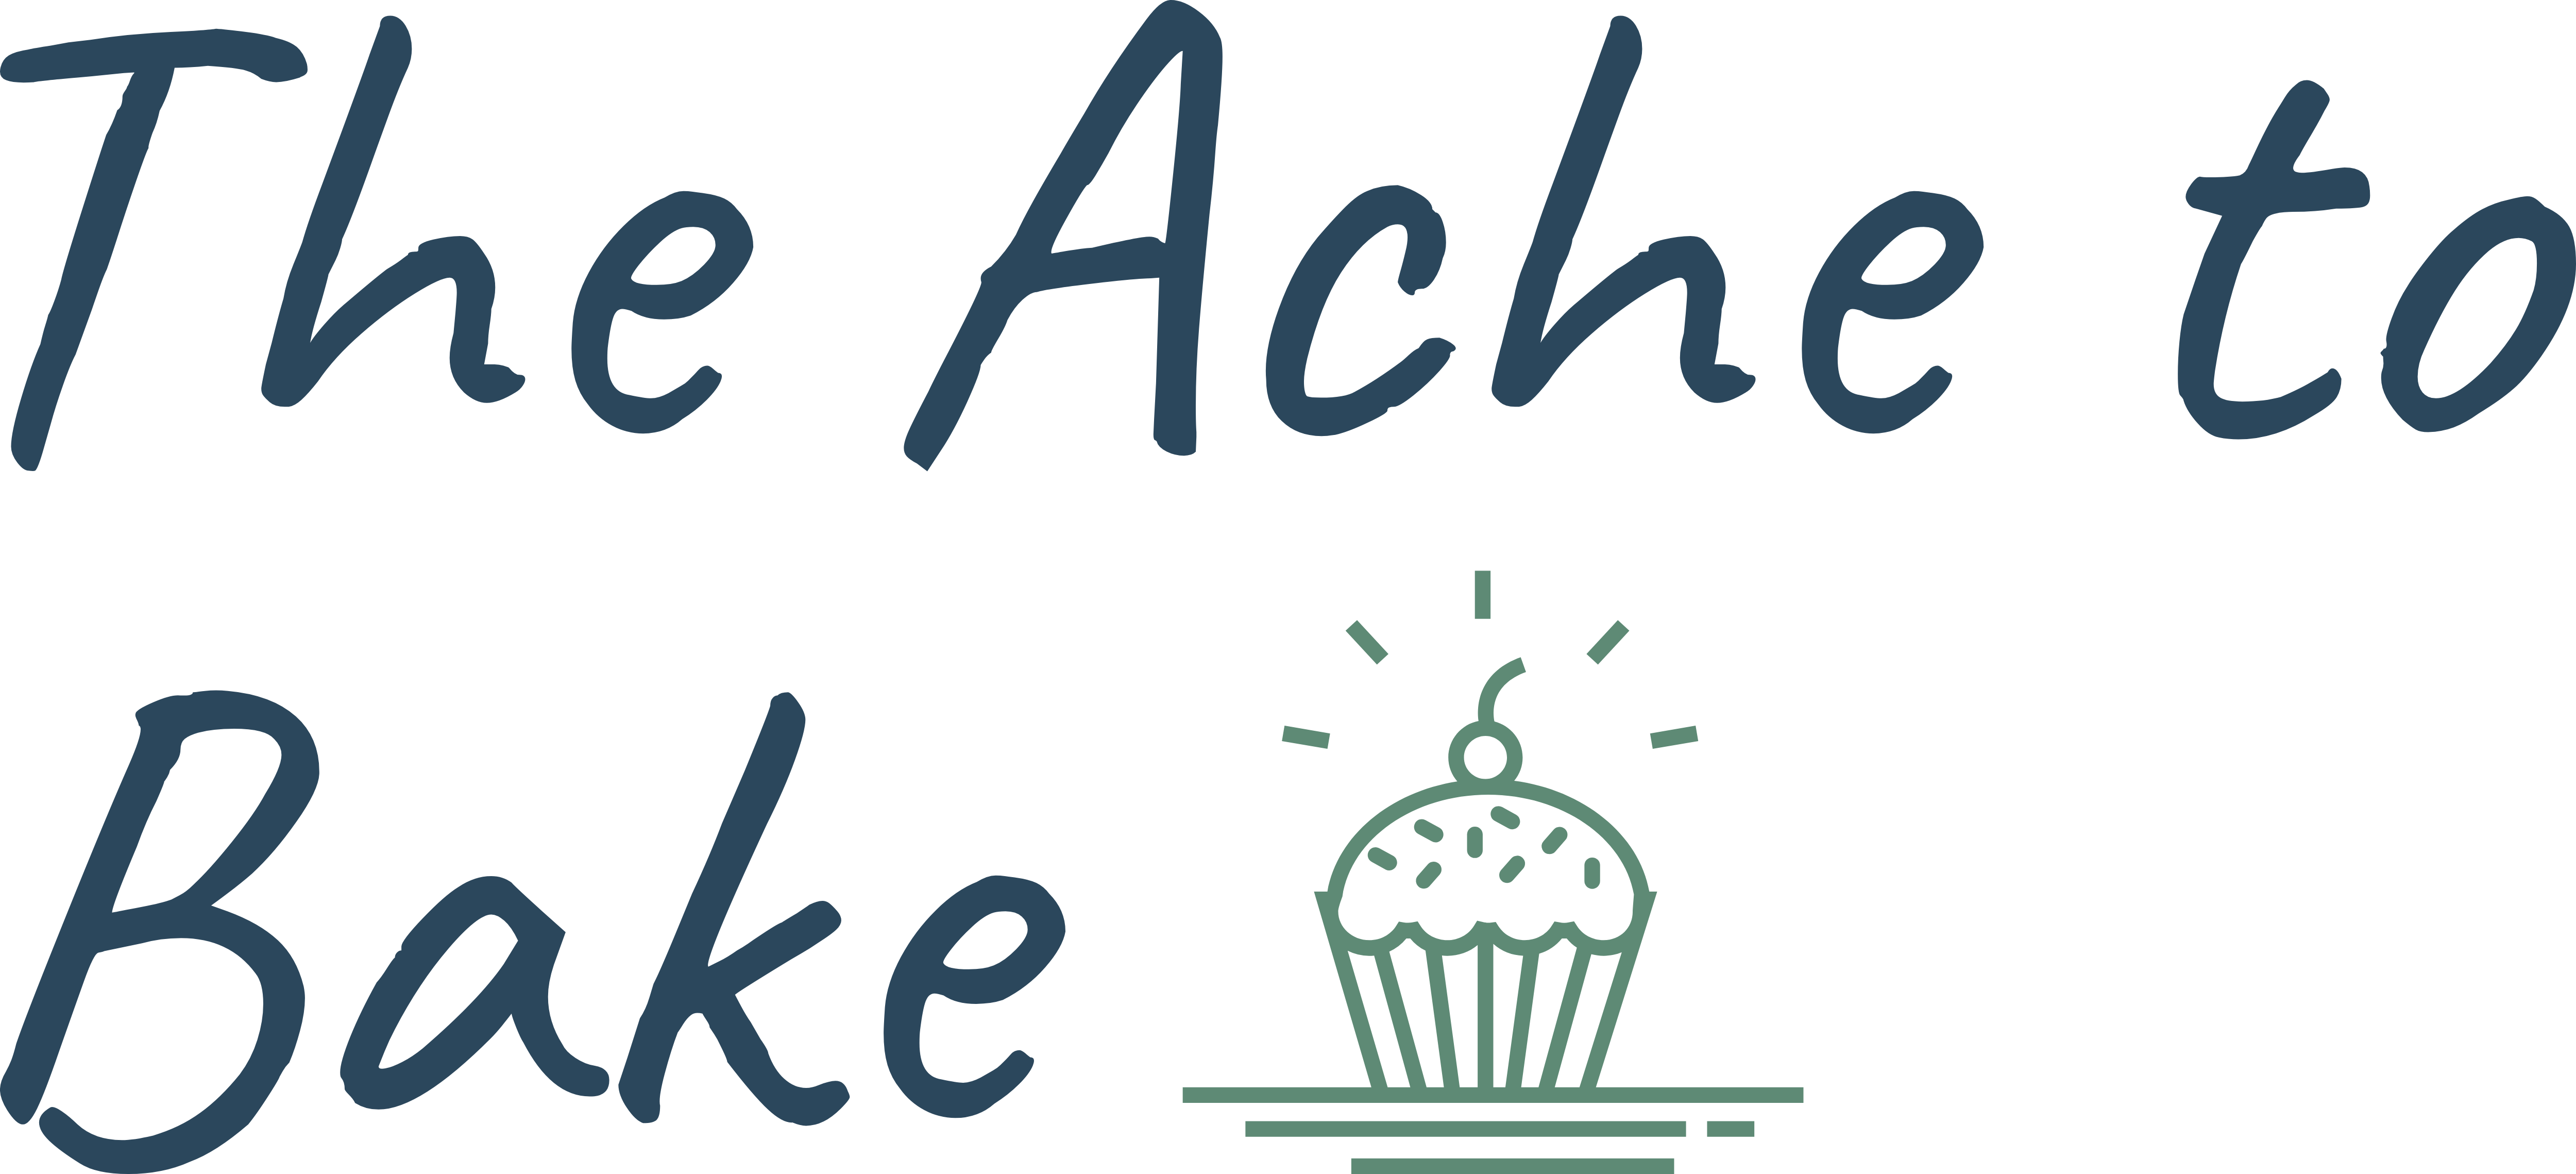 The Ache to Bake